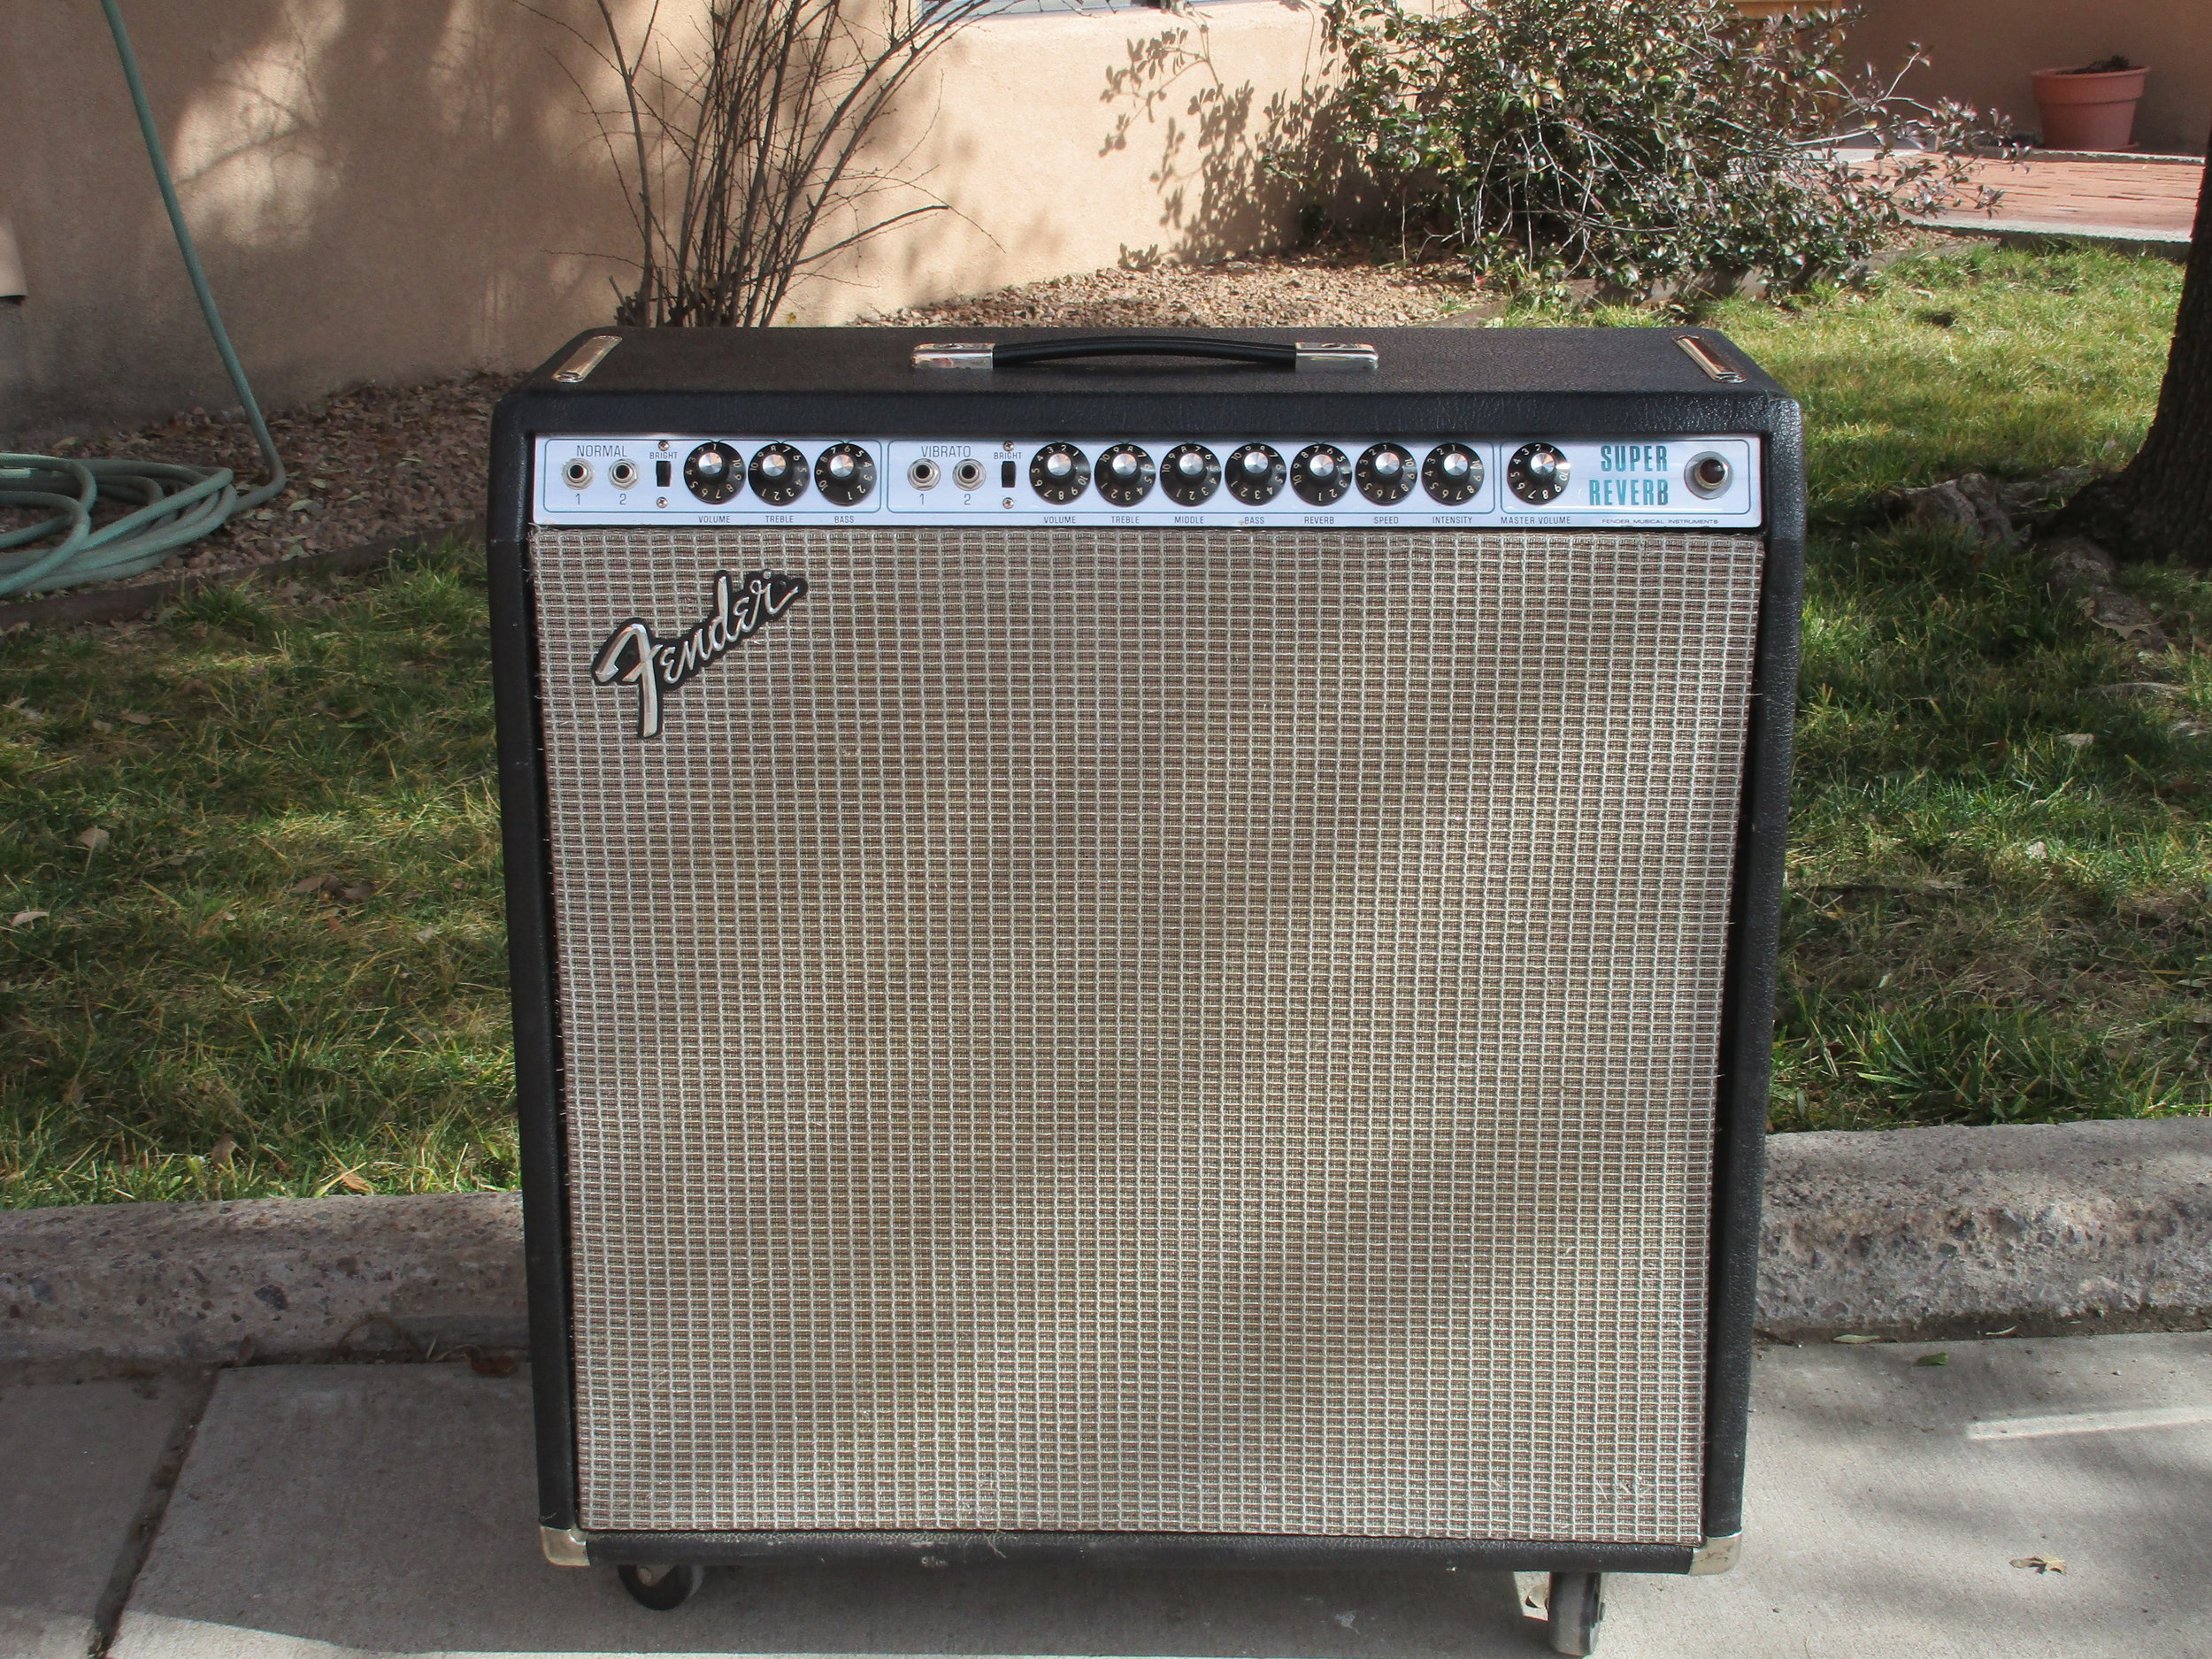 Silverface Super Reverb fully restored to working condition and modded to Blackface specs. Awesome sounding!